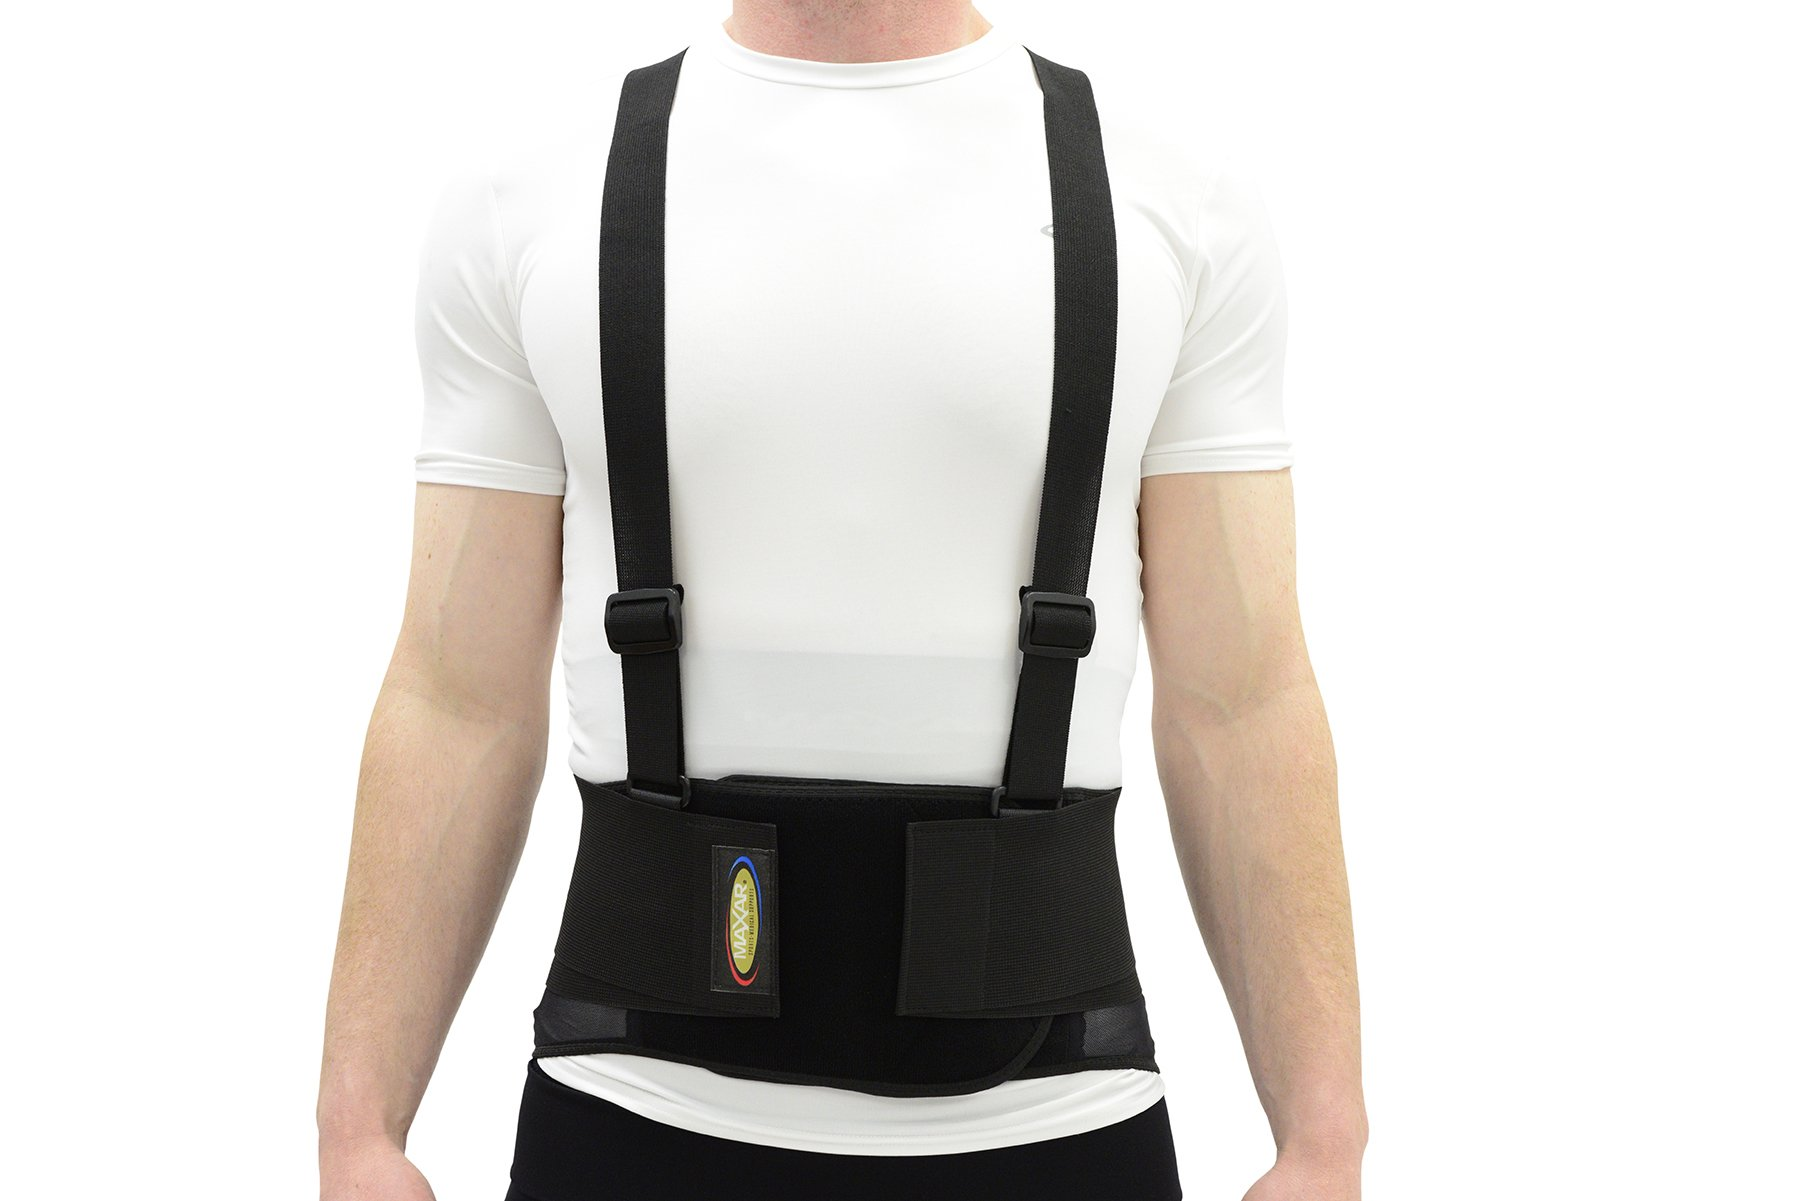 "Maxar IBS-3000 Back Brace Lumbar Support w/Adjustable and Detachable Suspenders Pain Relief High Quality Breathable Back Belt Lower Back Pain Work Lifting Exercise Gym Small 28""-33"" by Maxar"